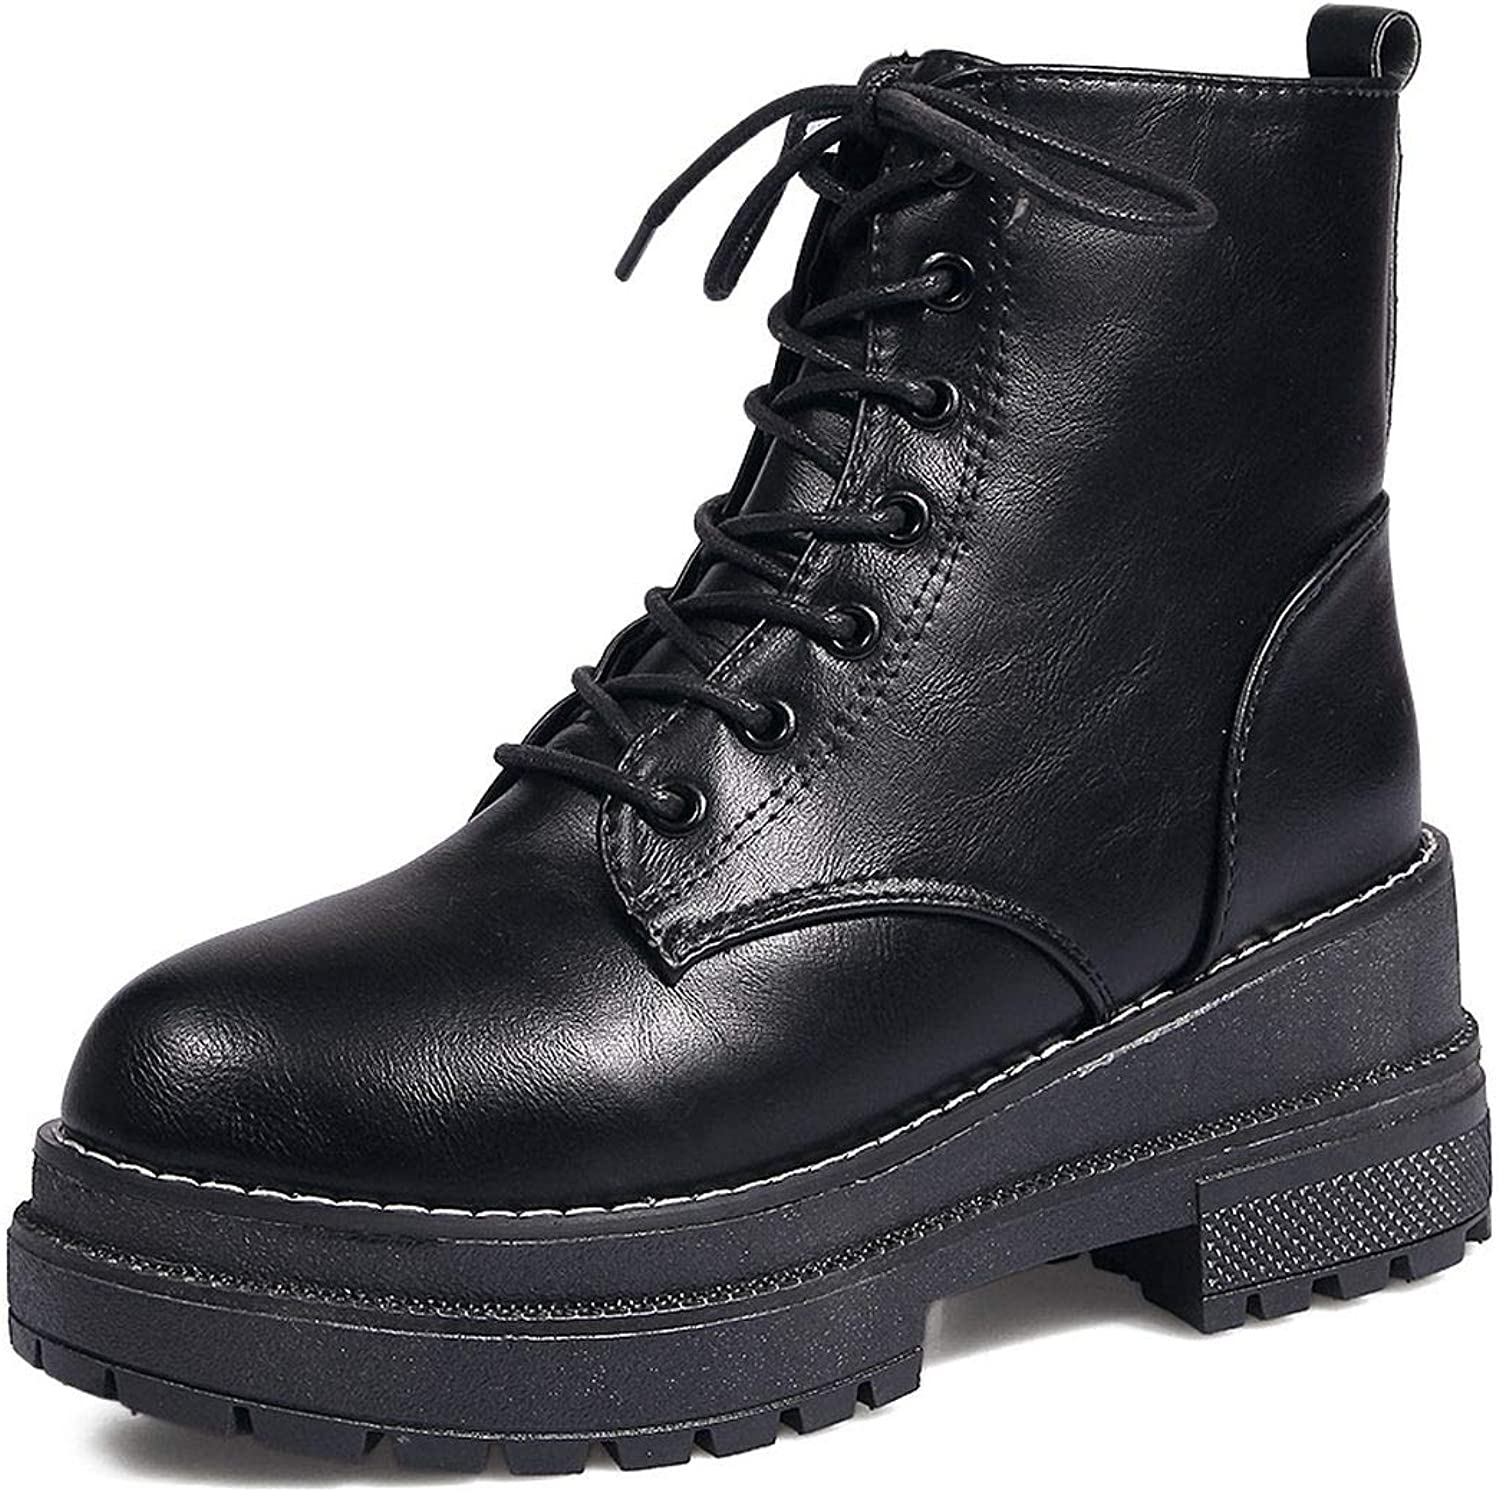 Superb Zone Women shoes Motorcycle Boots New Lace Up Proof Platform Thick Heel Boots Women,Black,5